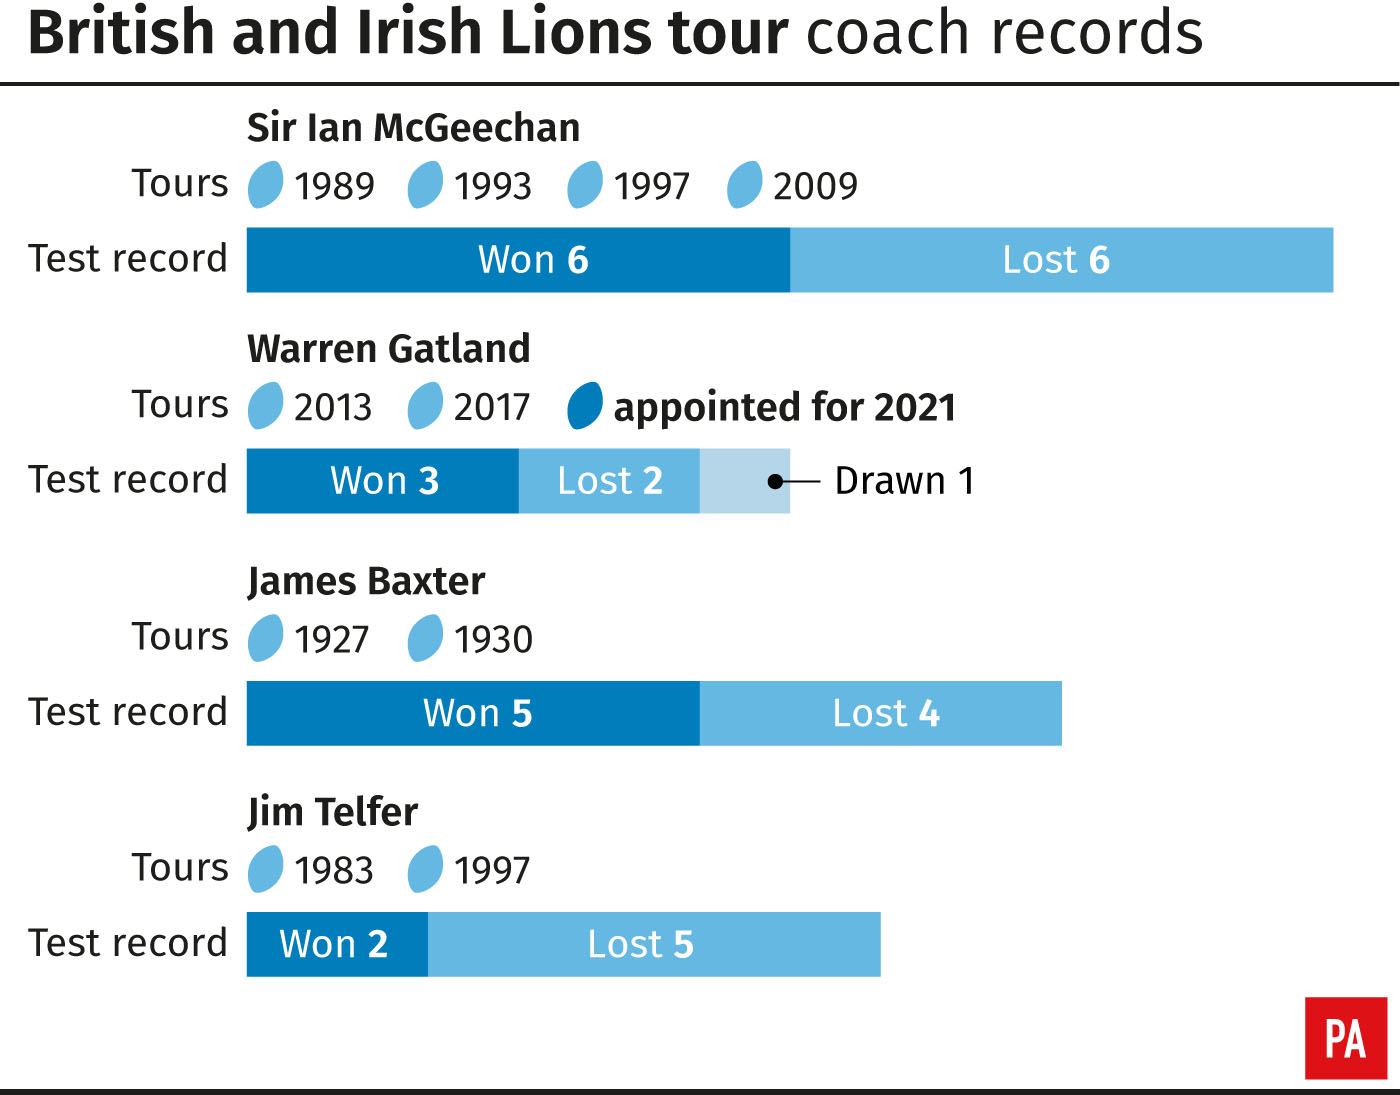 Career records for British and Irish Lions coaches with multiple tours